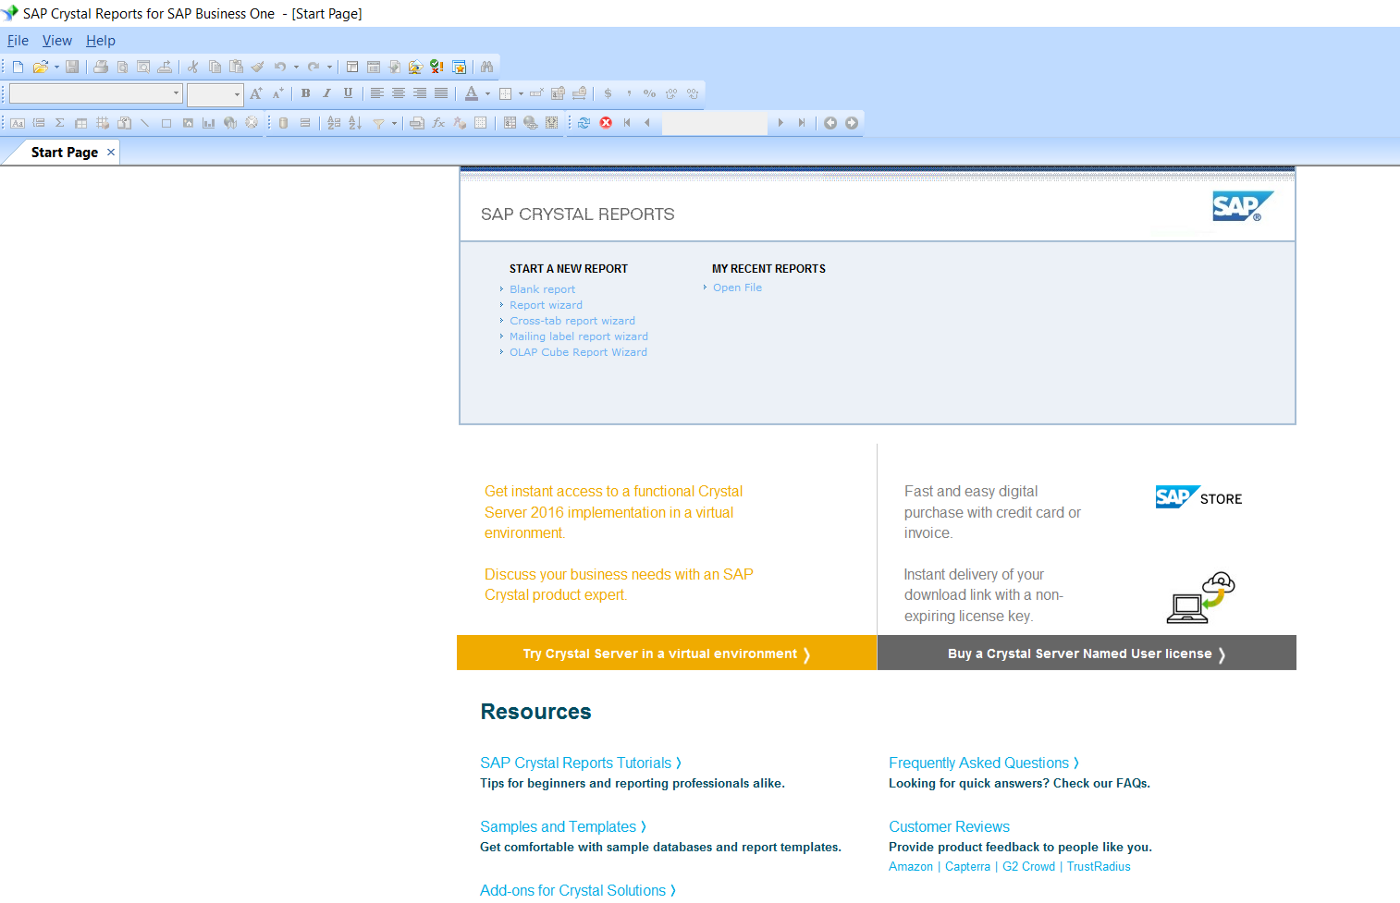 Creating a Crystal Report that uses Hana as a data source and